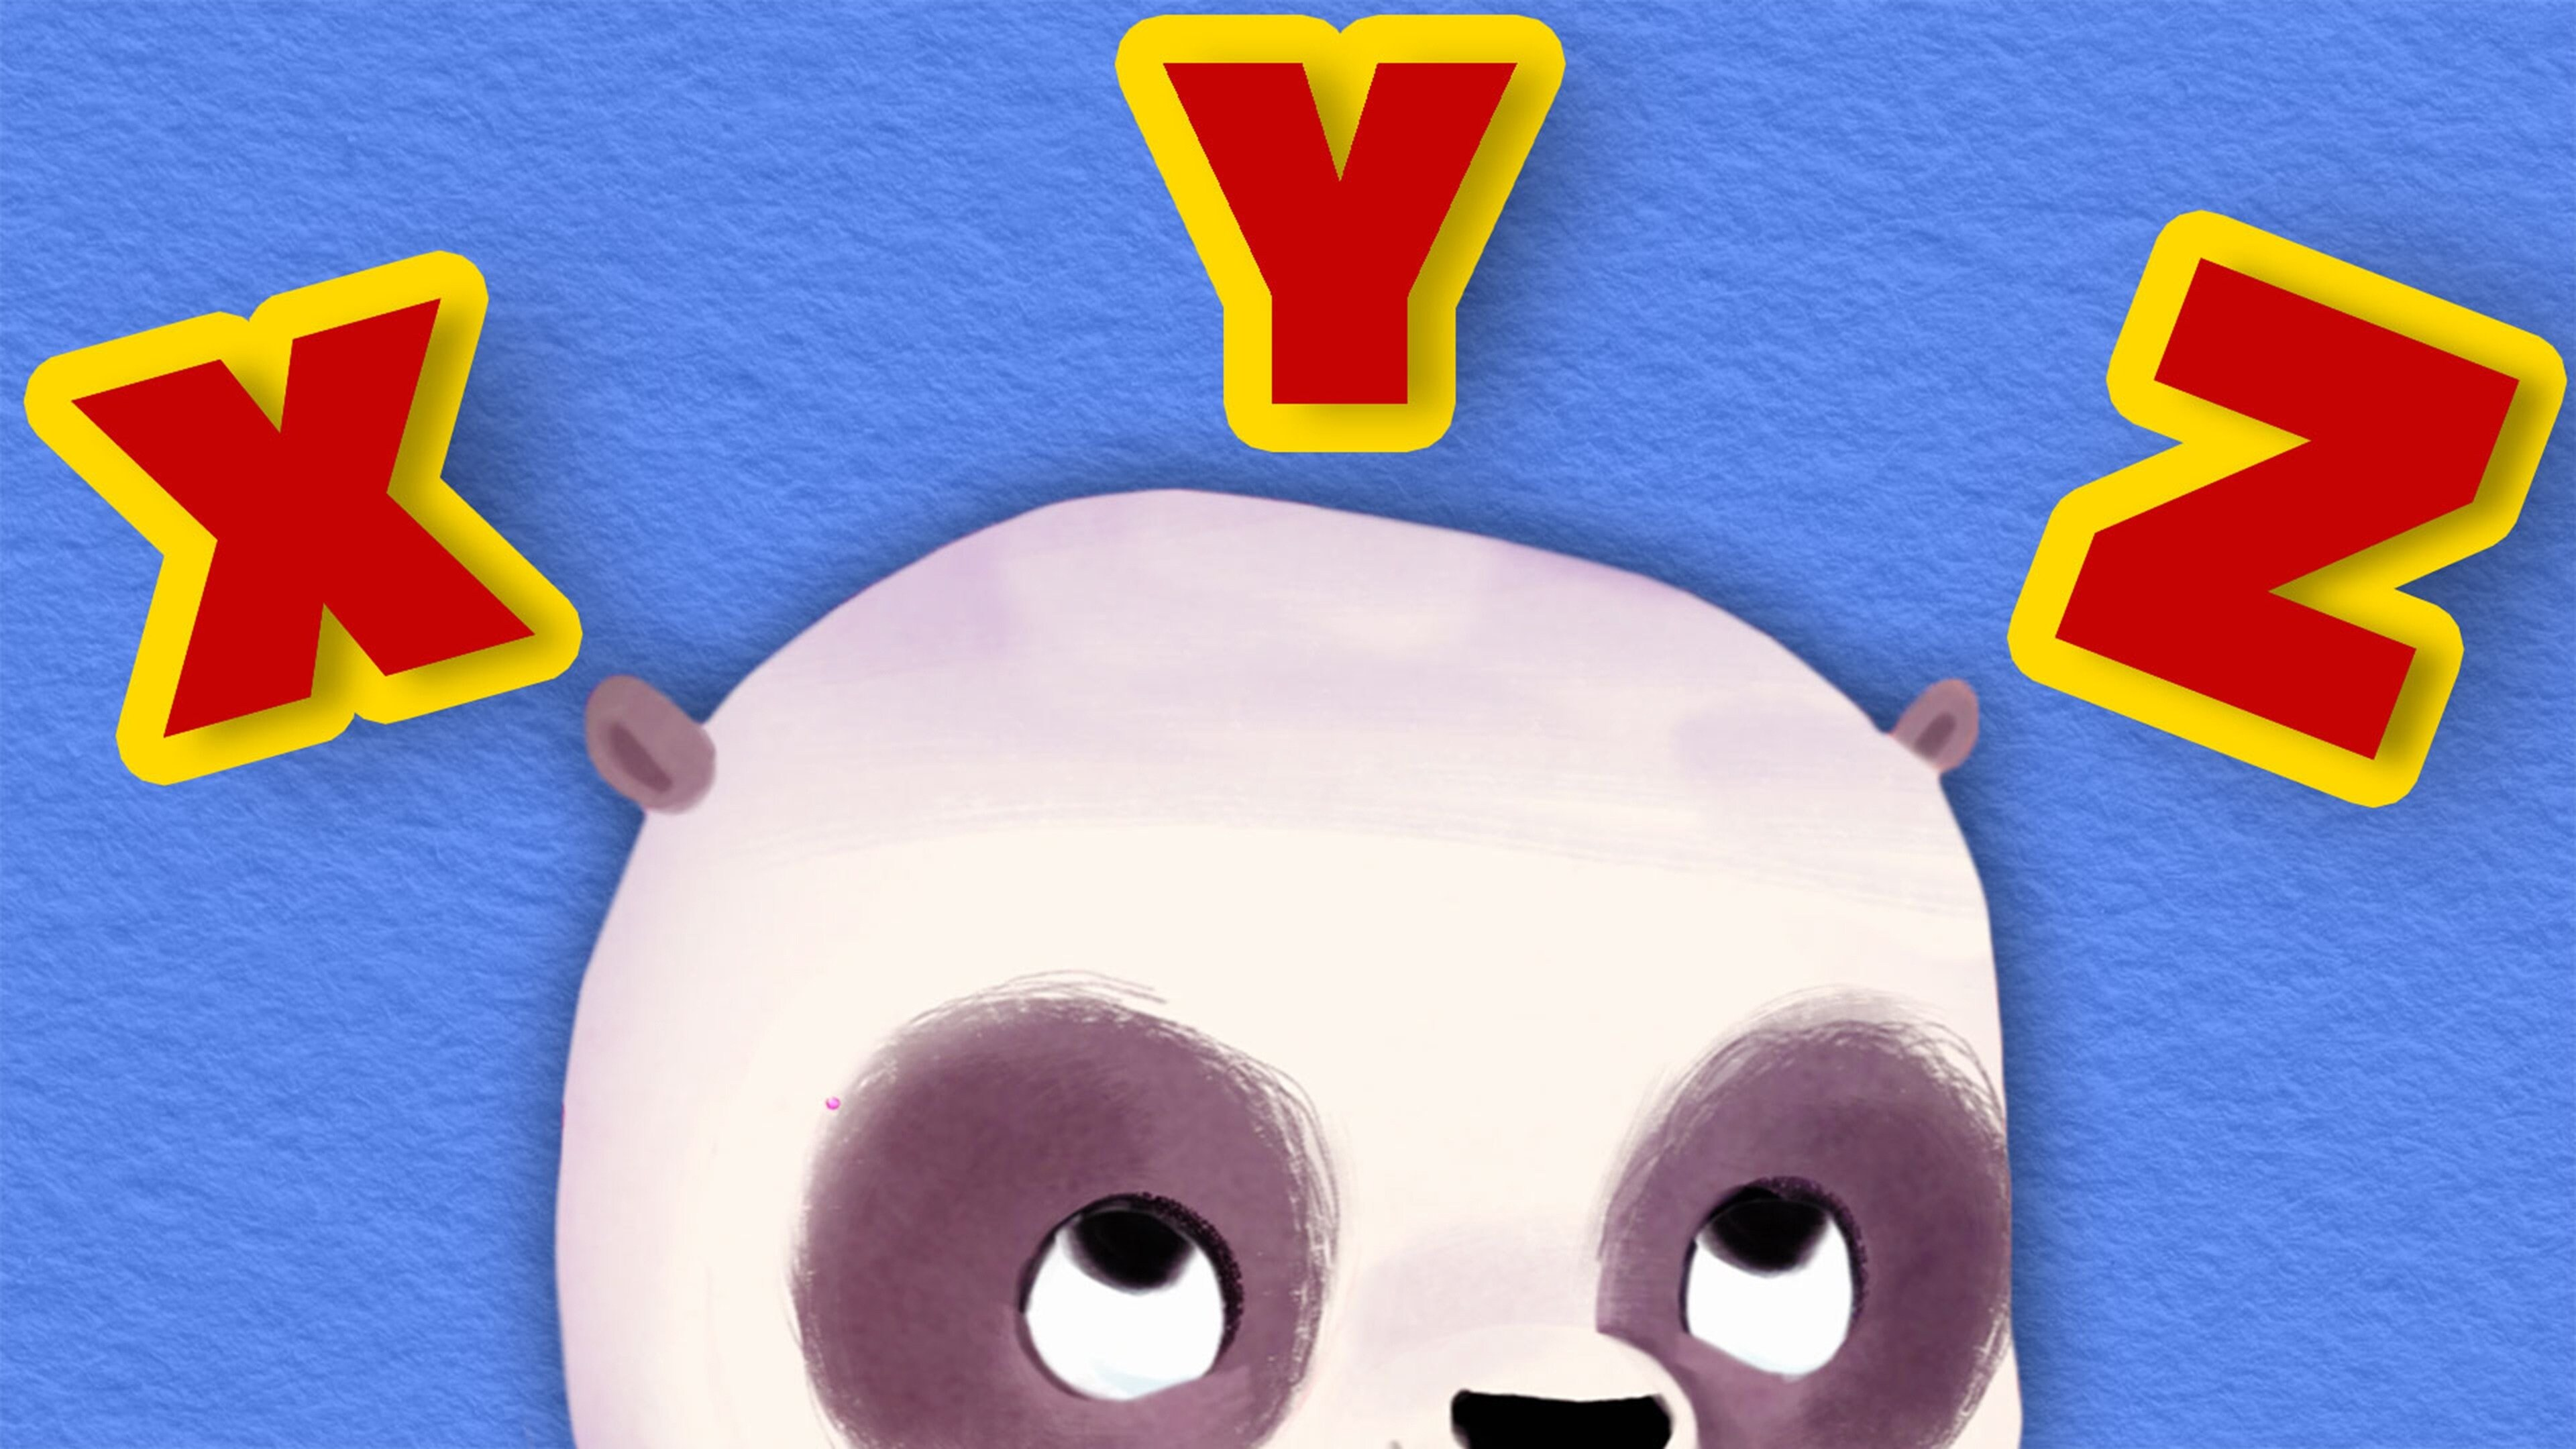 The ZXYs (New Alphabet Song) with Kung Fu Panda